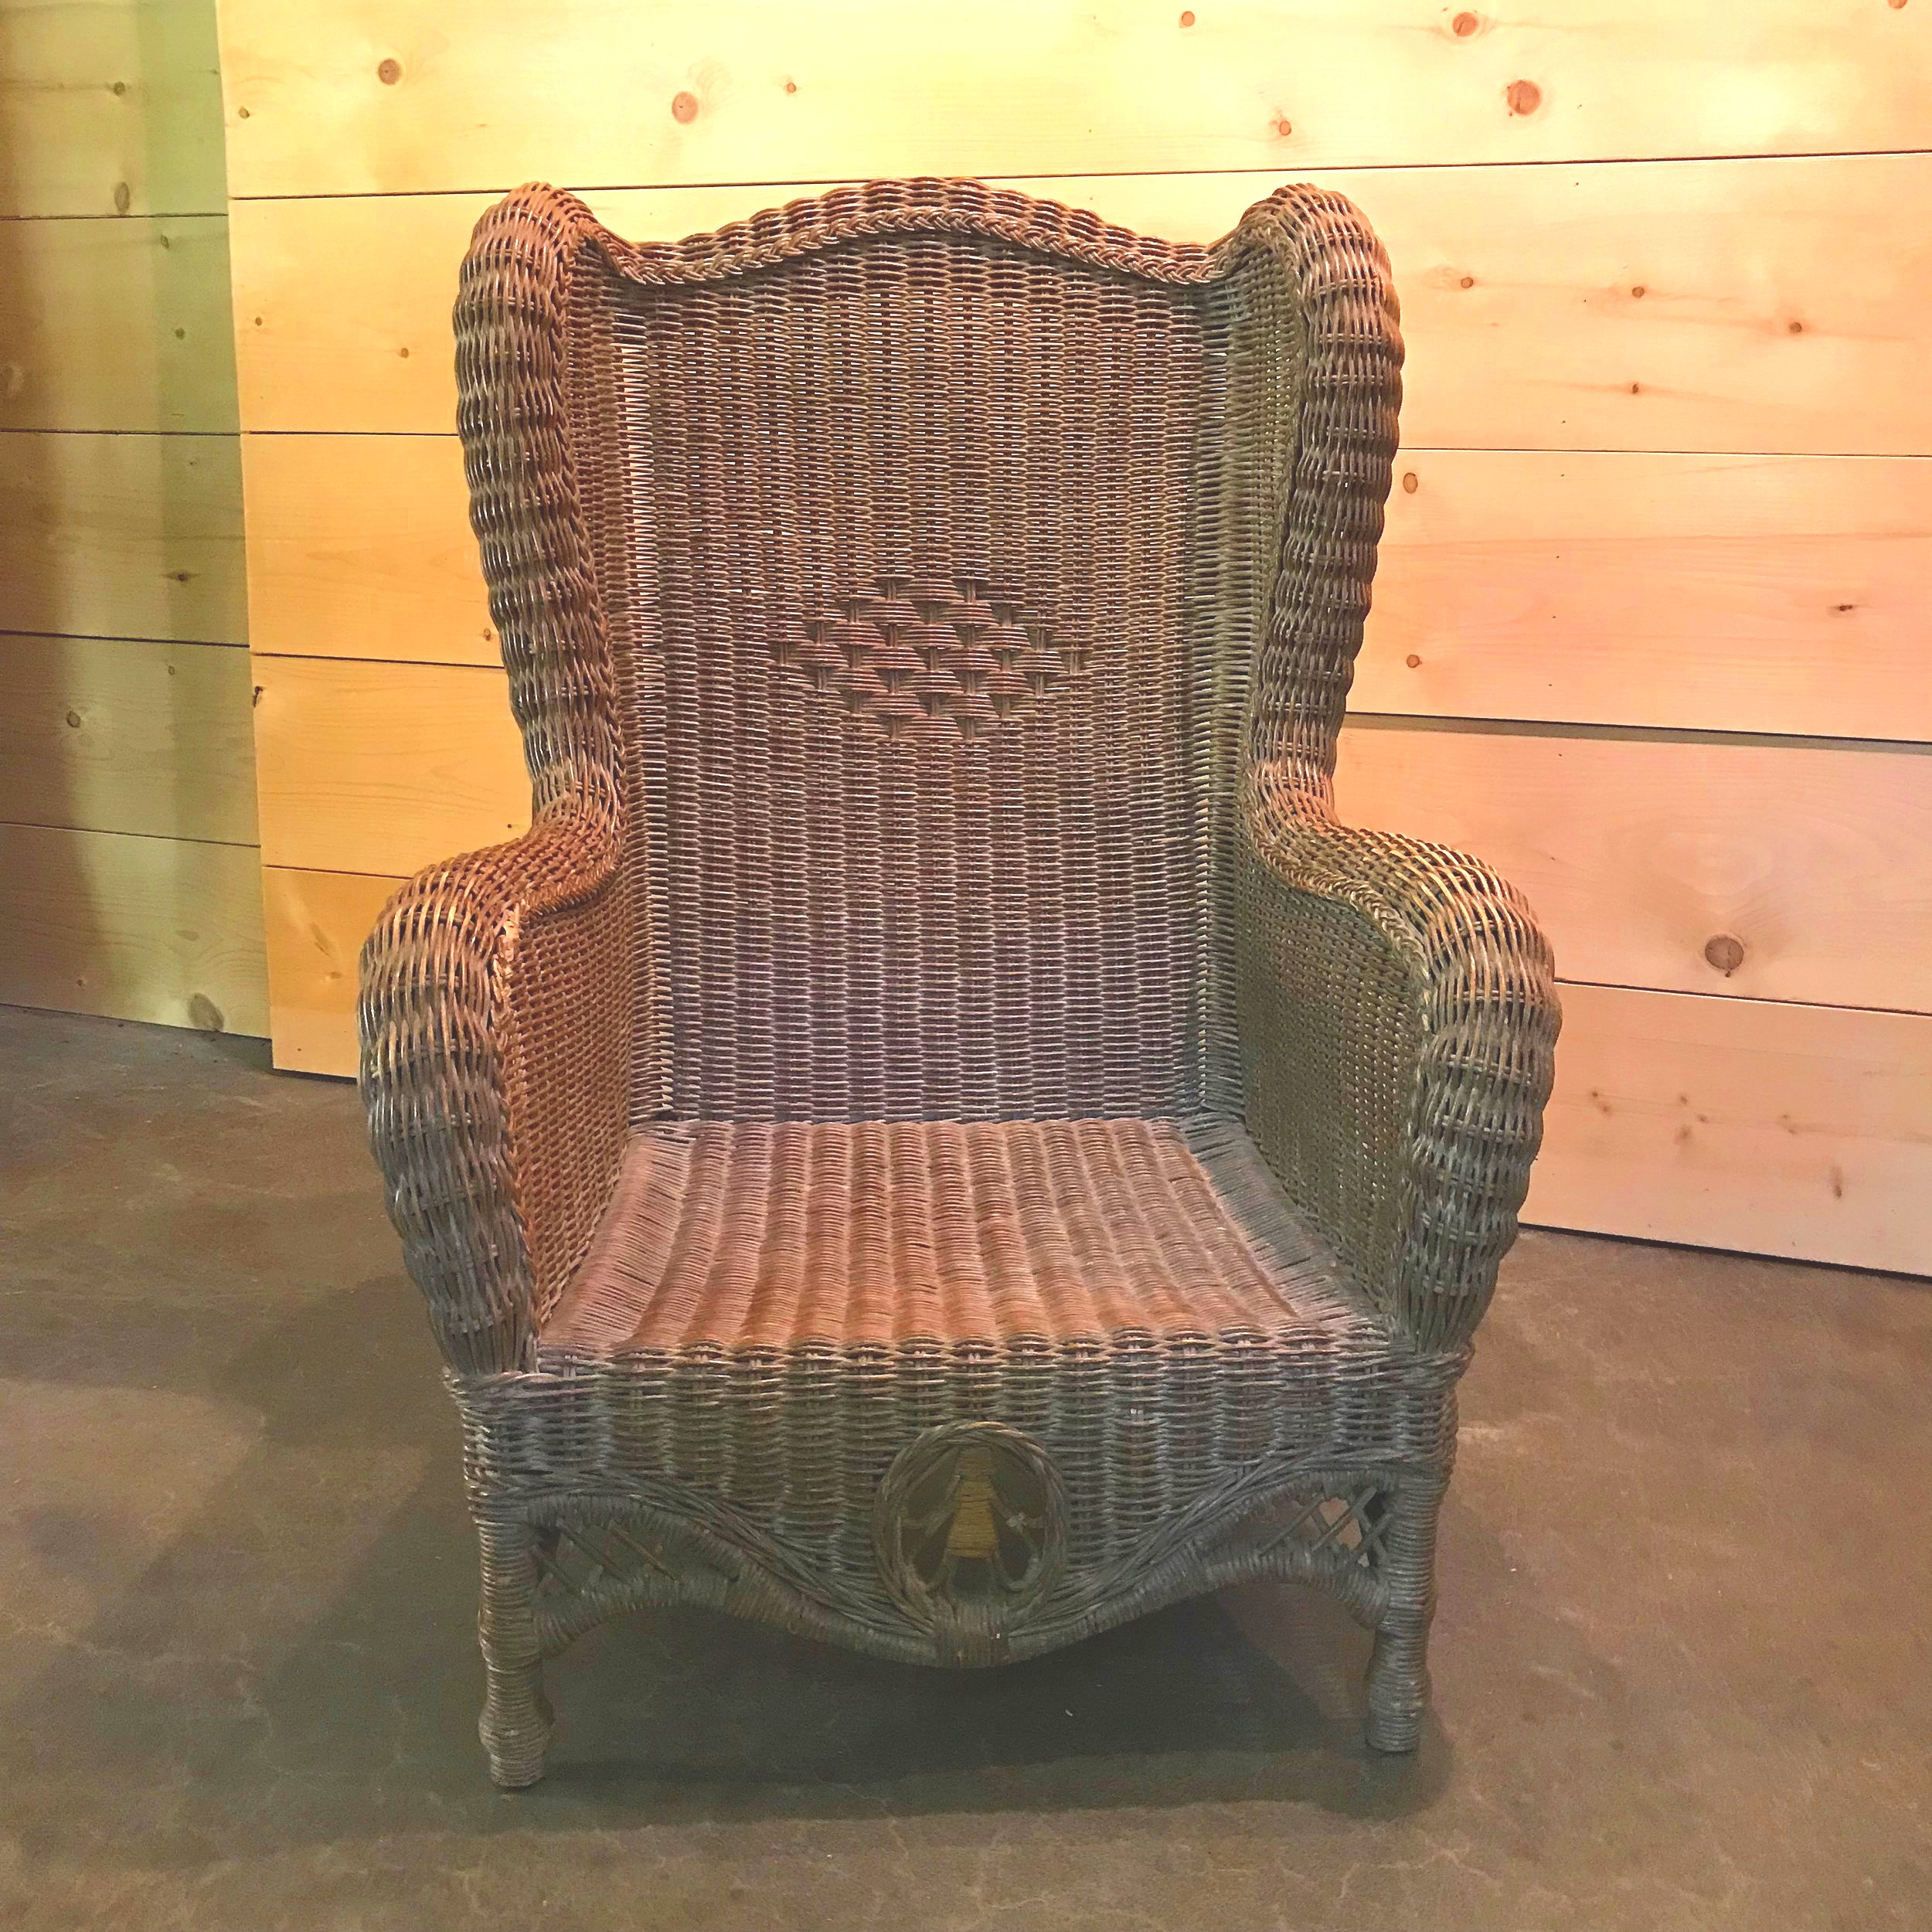 tightly woven brown wicker chair.